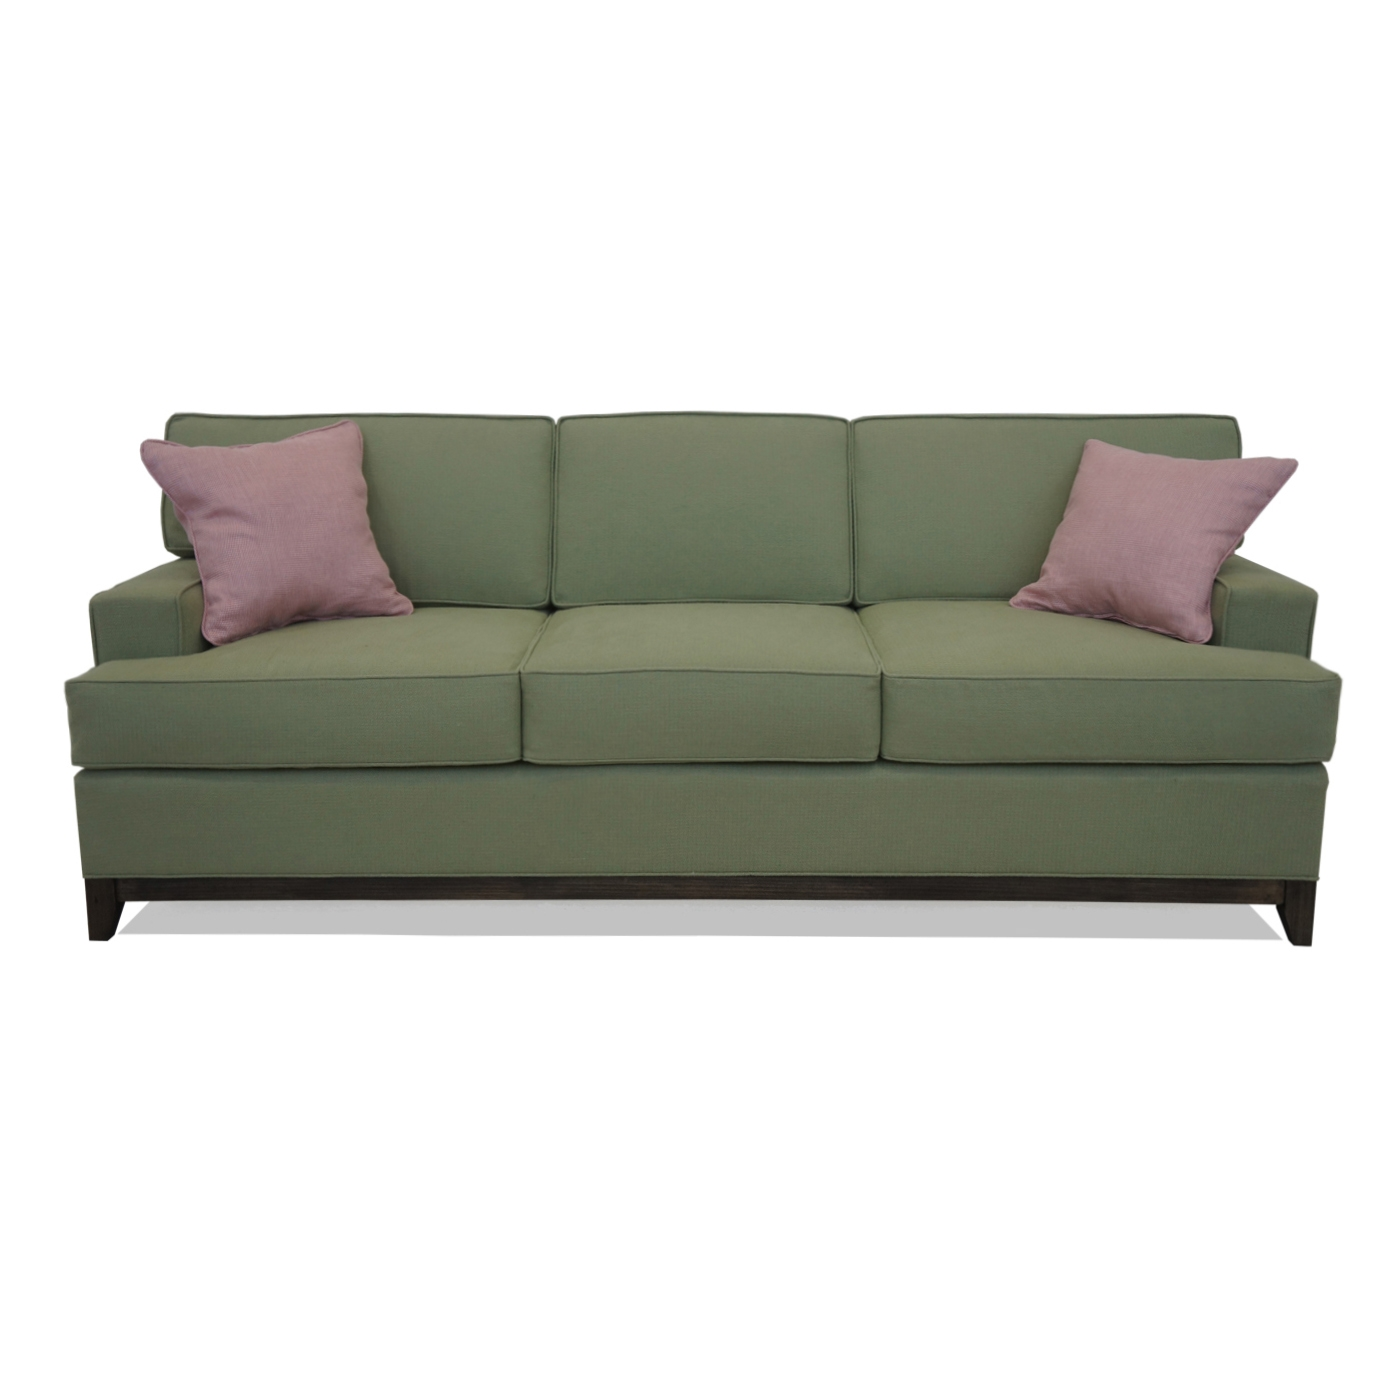 Best place to buy sofa for Best place to buy a leather sofa